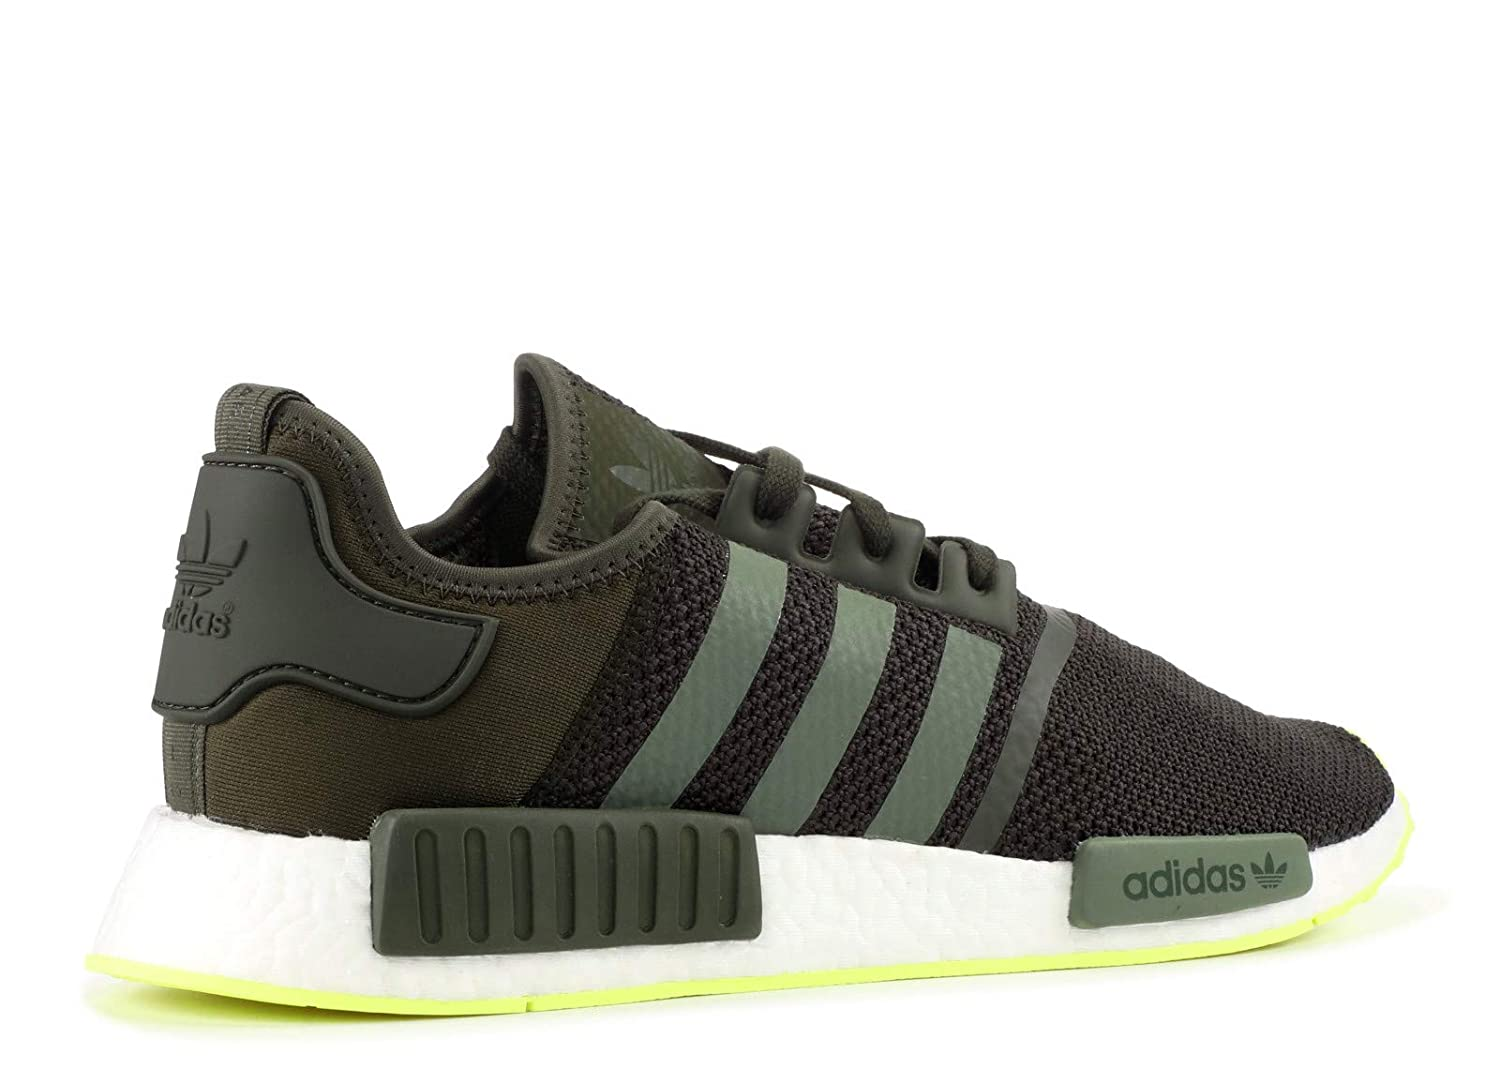 separation shoes f1be9 faa12 Amazon.com | adidas NMD R1 - Cq2414 - Size 11.5 | Running